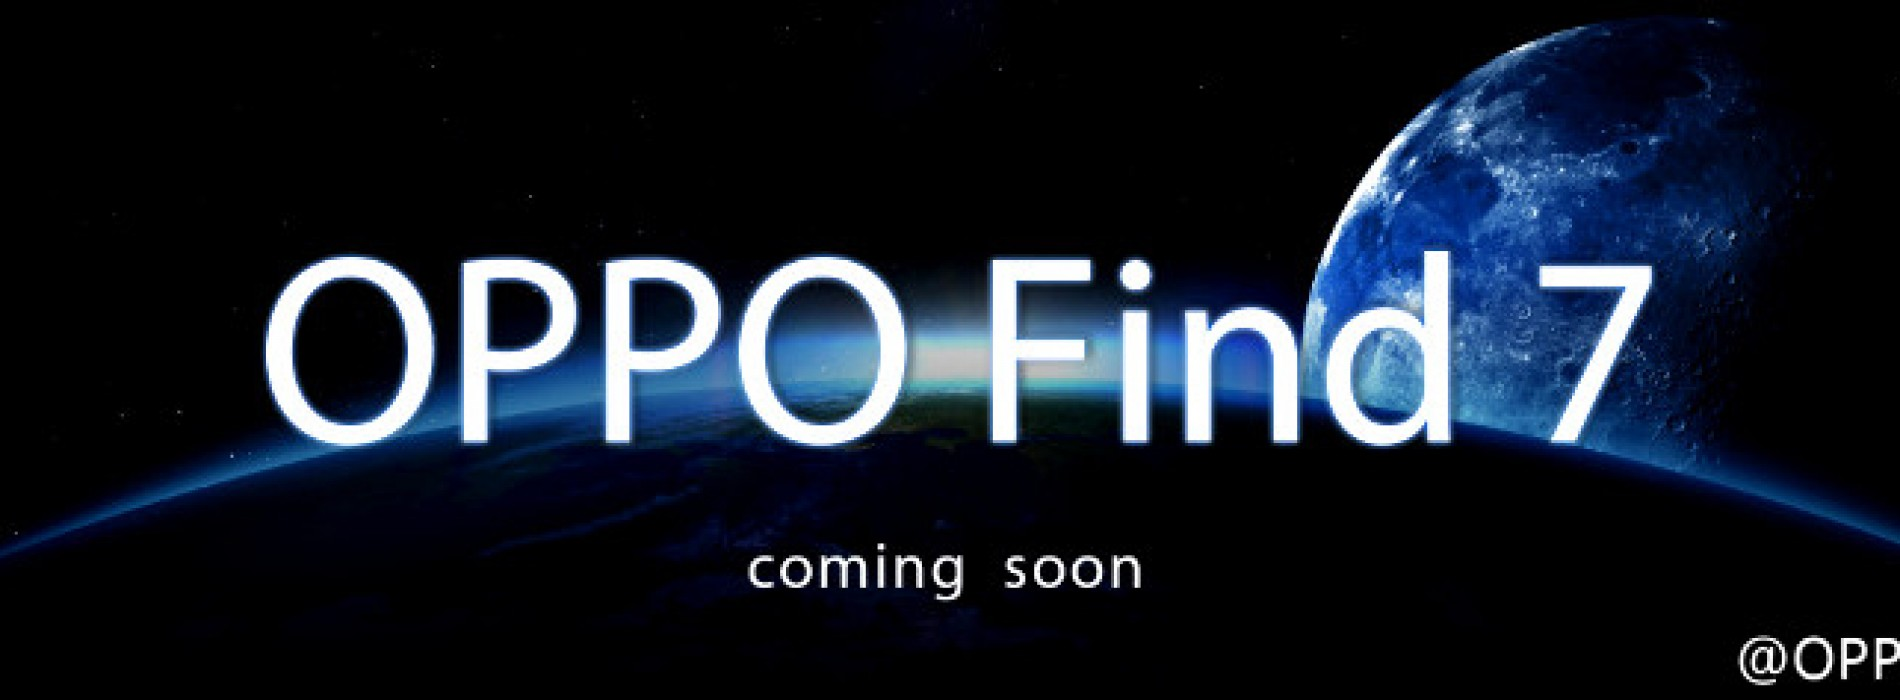 Oppo teasing Find 7 on Twitter, launching soon